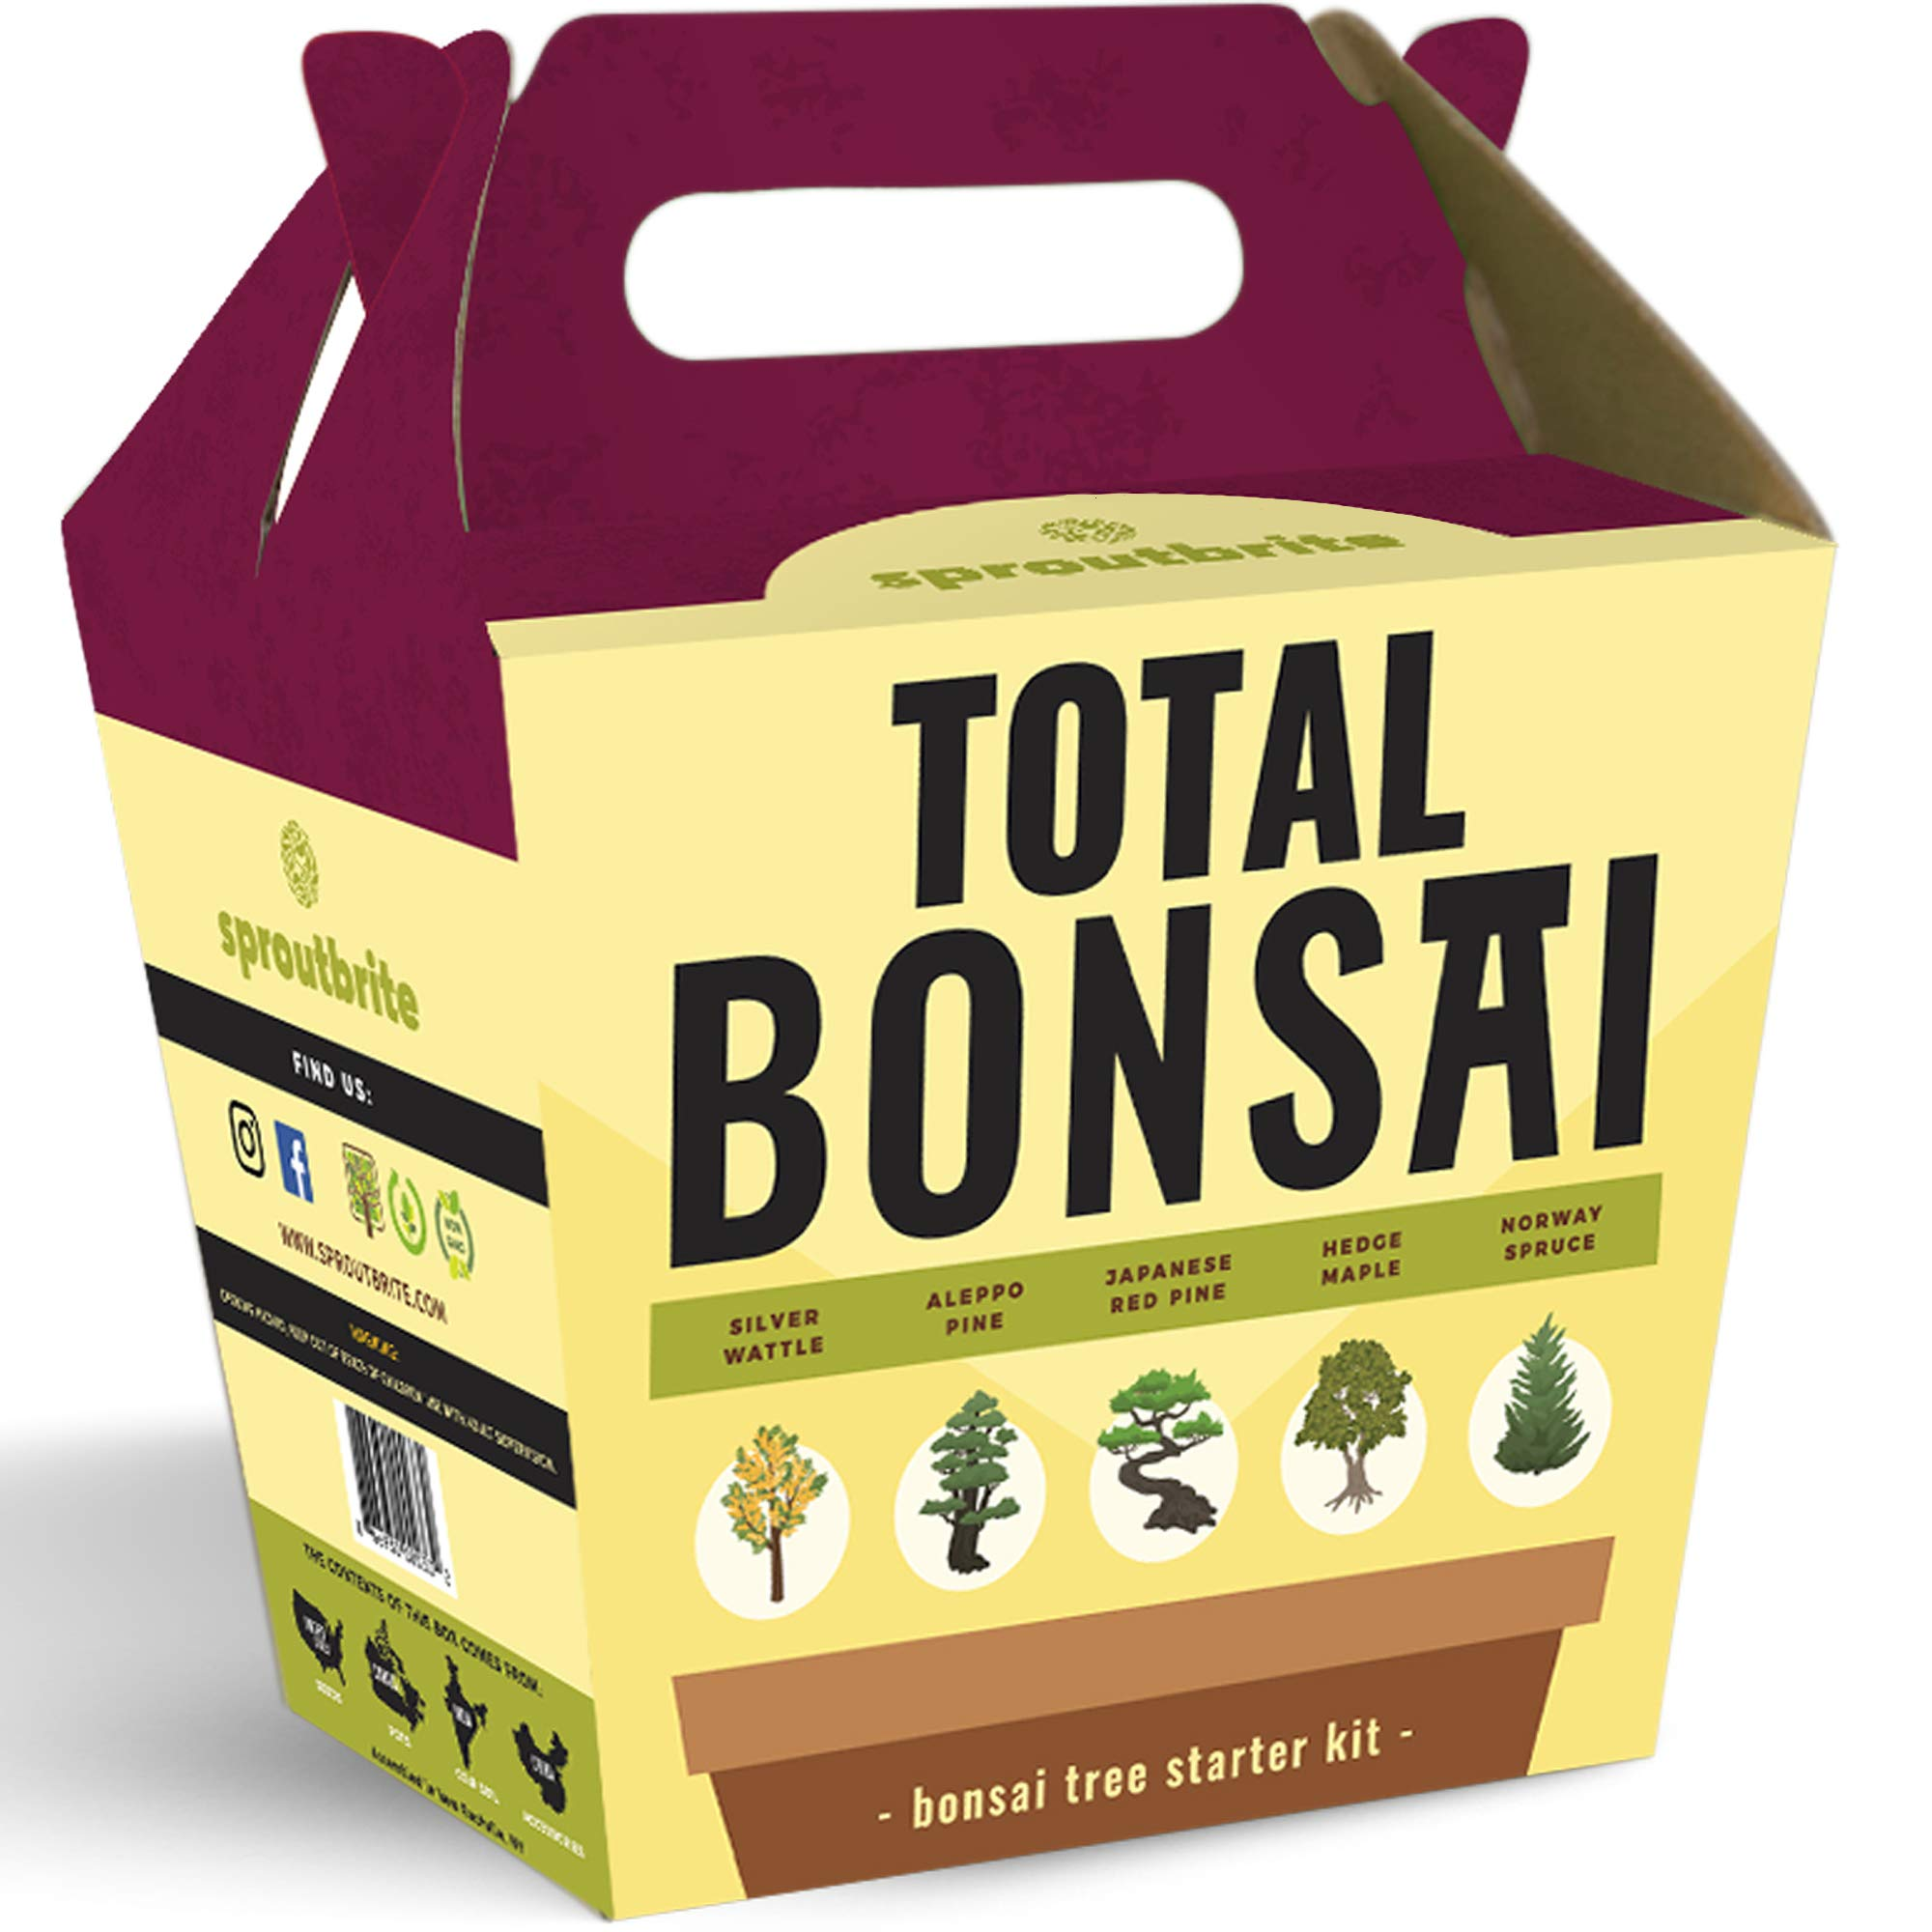 Sproutbrite Bonsai Tree Starter Kit - The 5 Easiest Trees to Grow from Seed Indoors - Complete Gardening Set with Comprehensive Instructions - DIY Mini Plant Growing Kit - Unique Gardening Gift by Sproutbrite